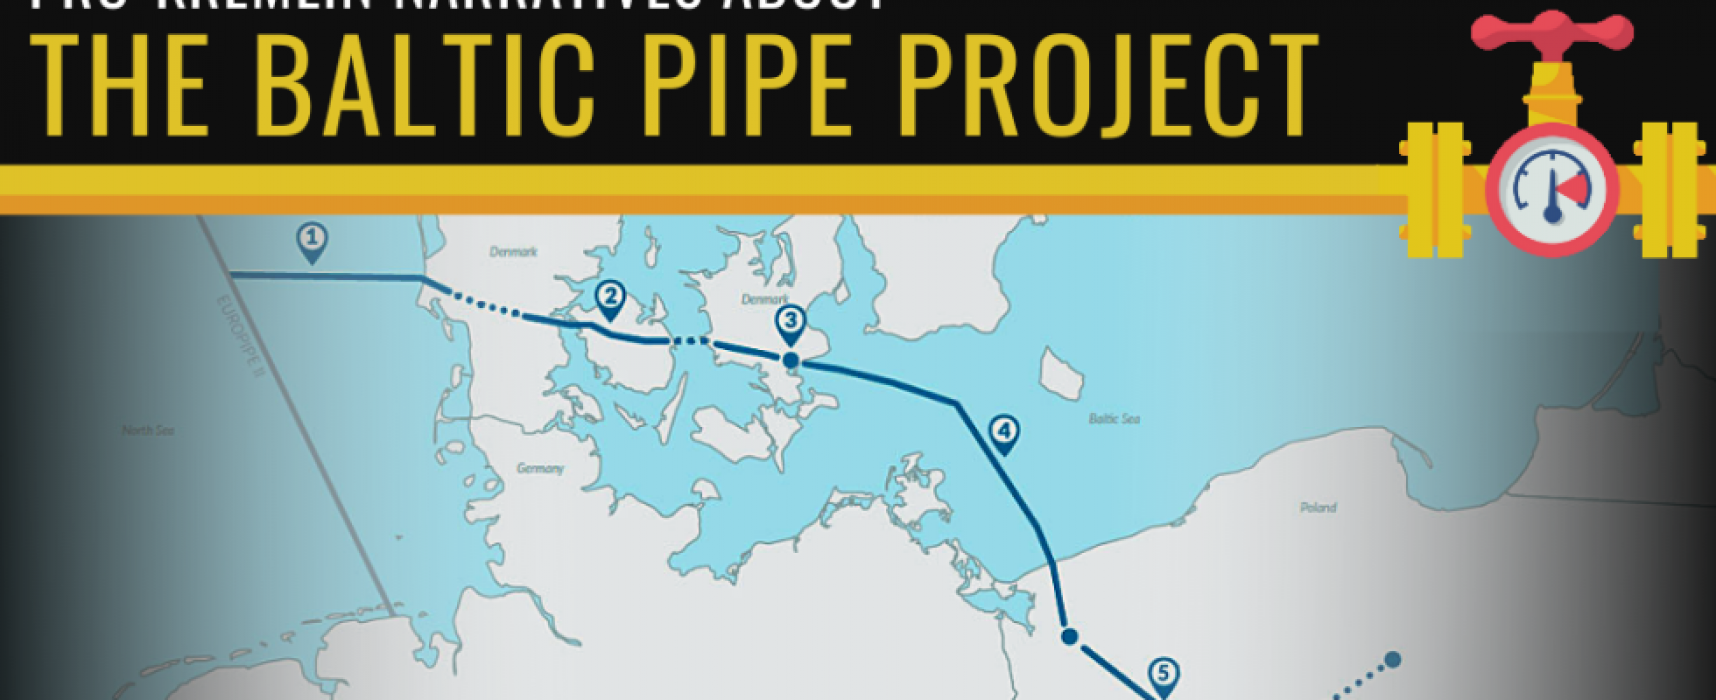 The Baltic Pipe сase: disinformation at the service of the Kremlin's energy policy